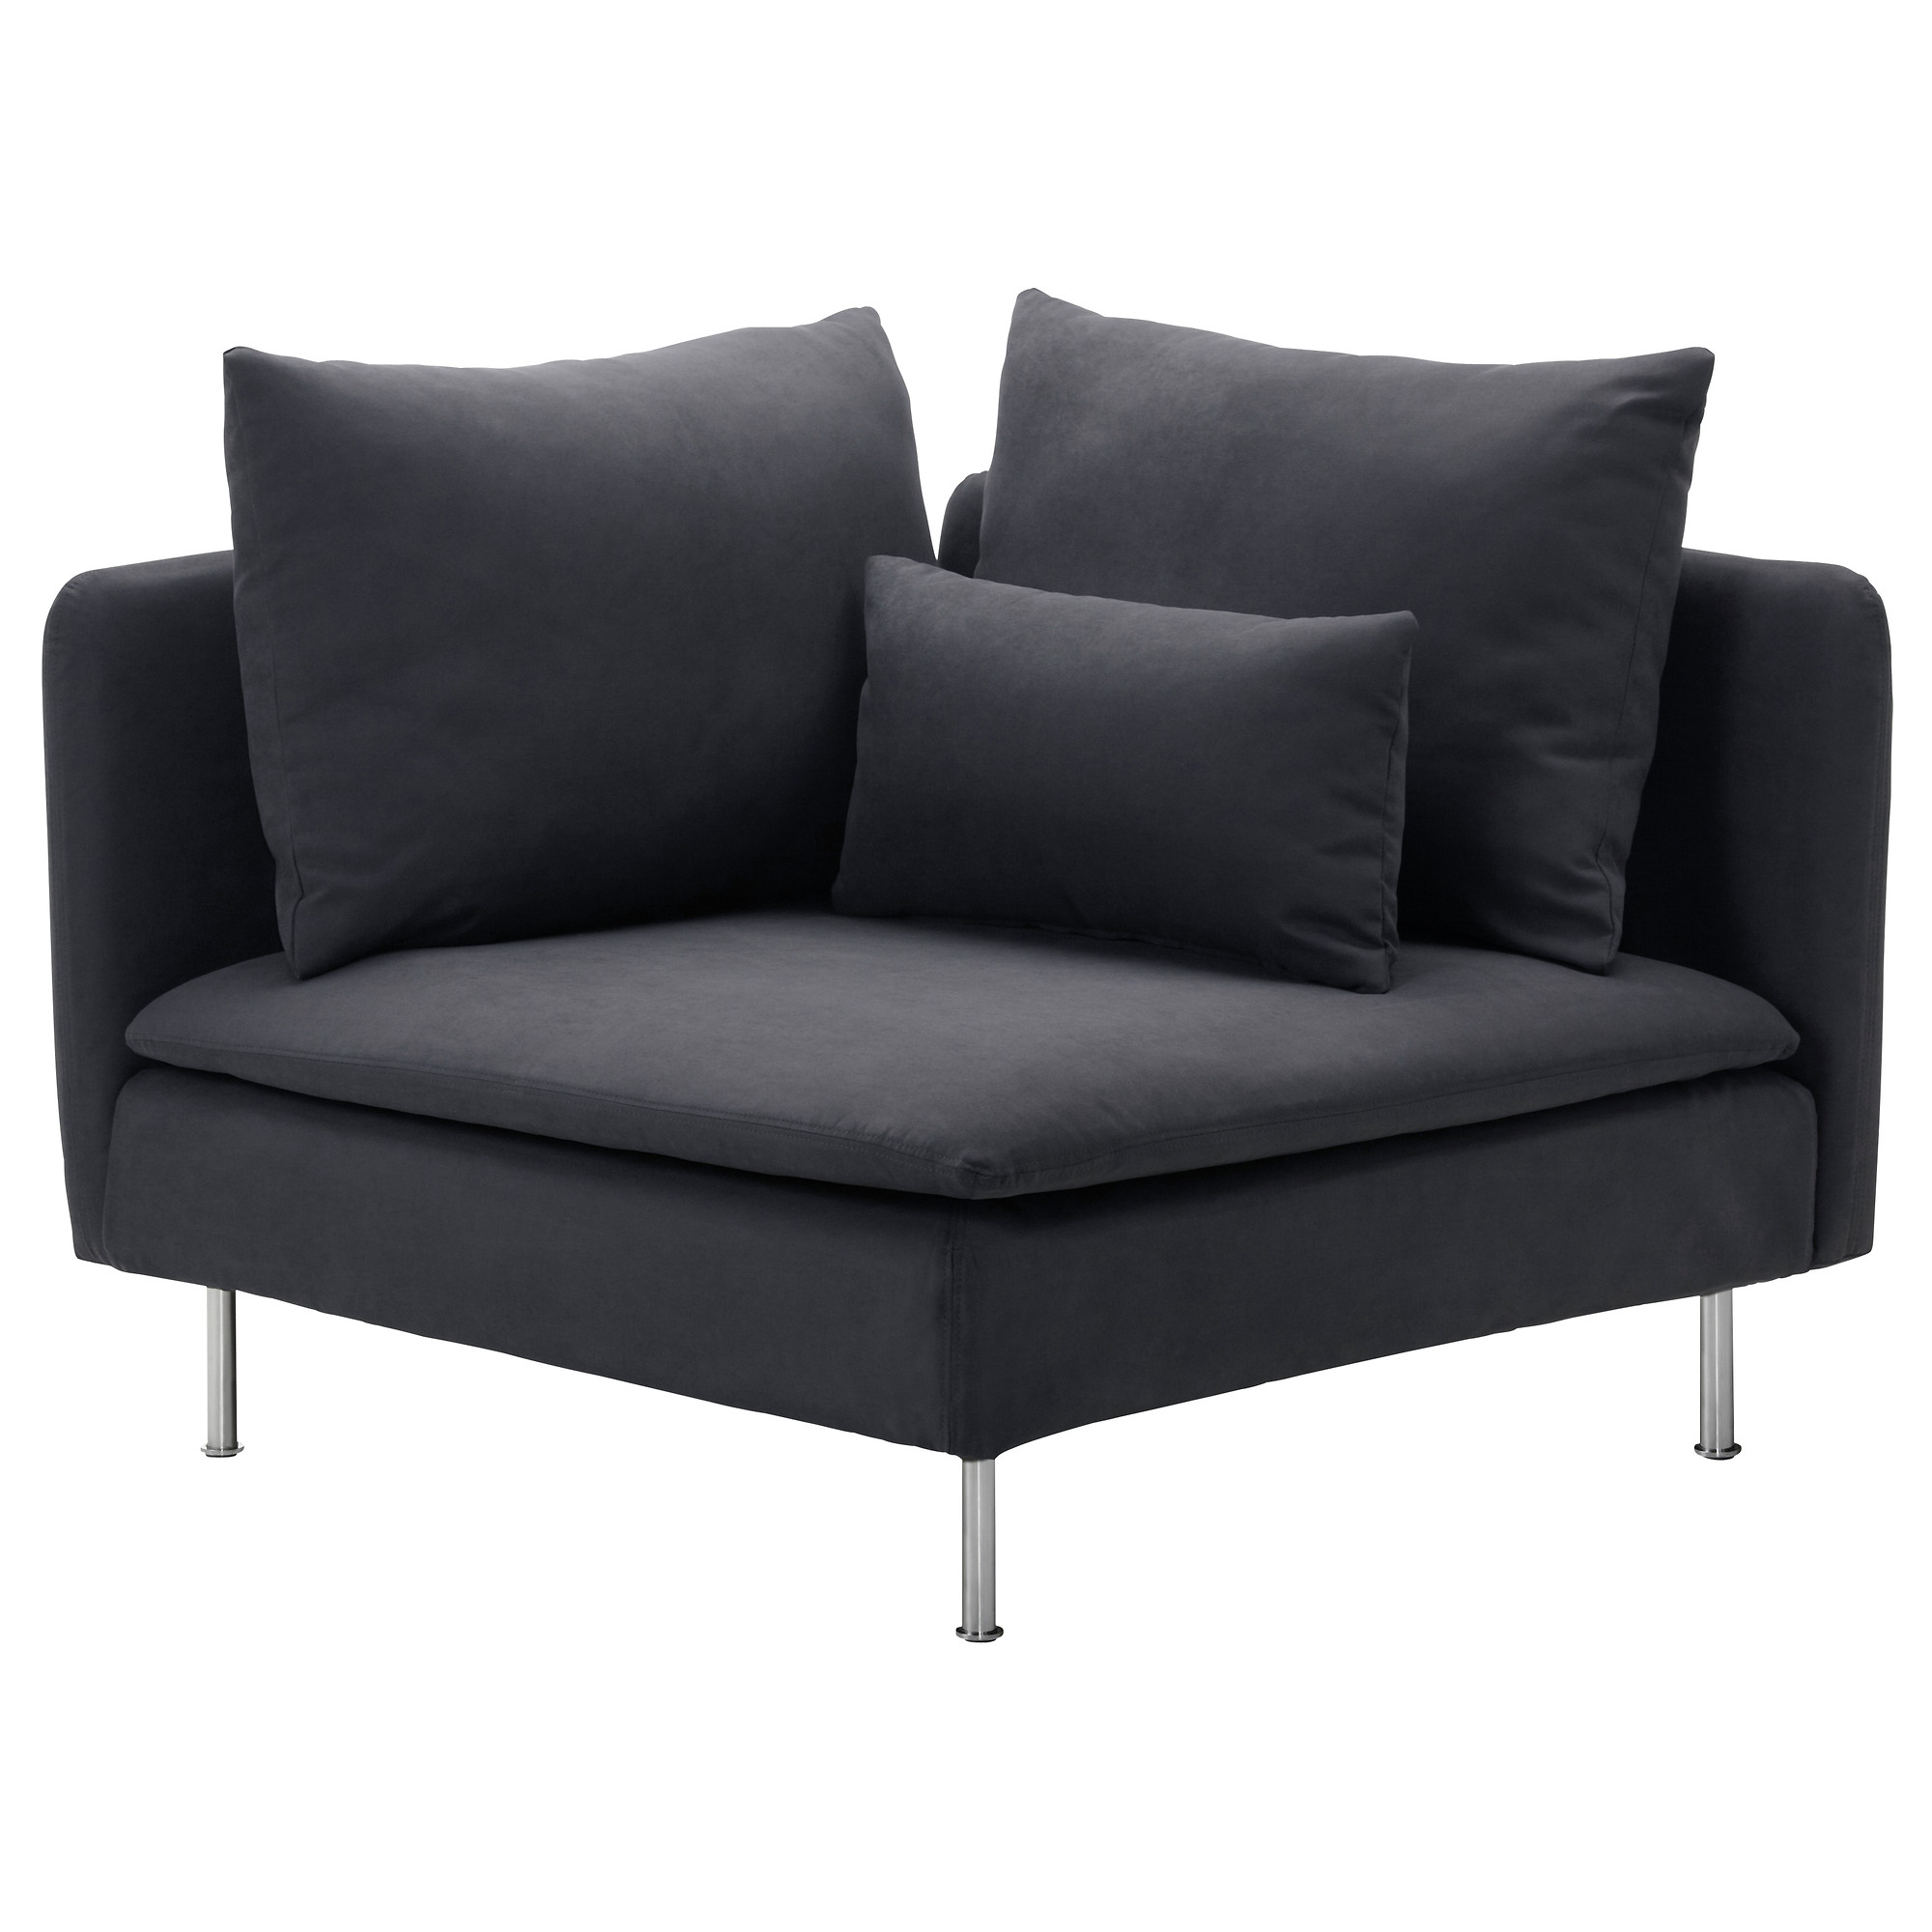 The Super Flexible Soderhamn Corner Sofa